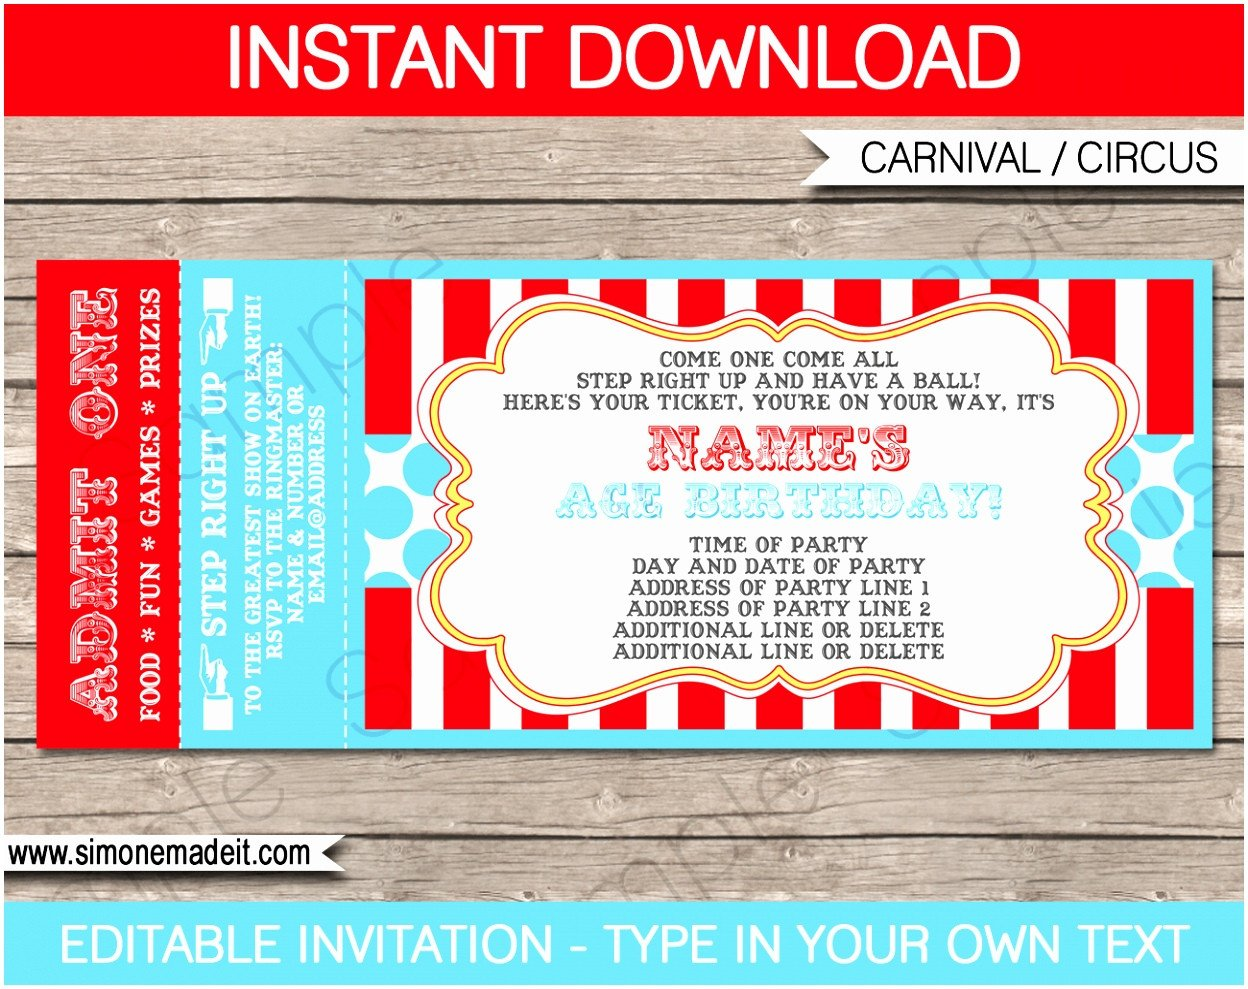 Carnival Ticket Invitation Template Free 12 Carnival Ticket Invitation Template Prwtv